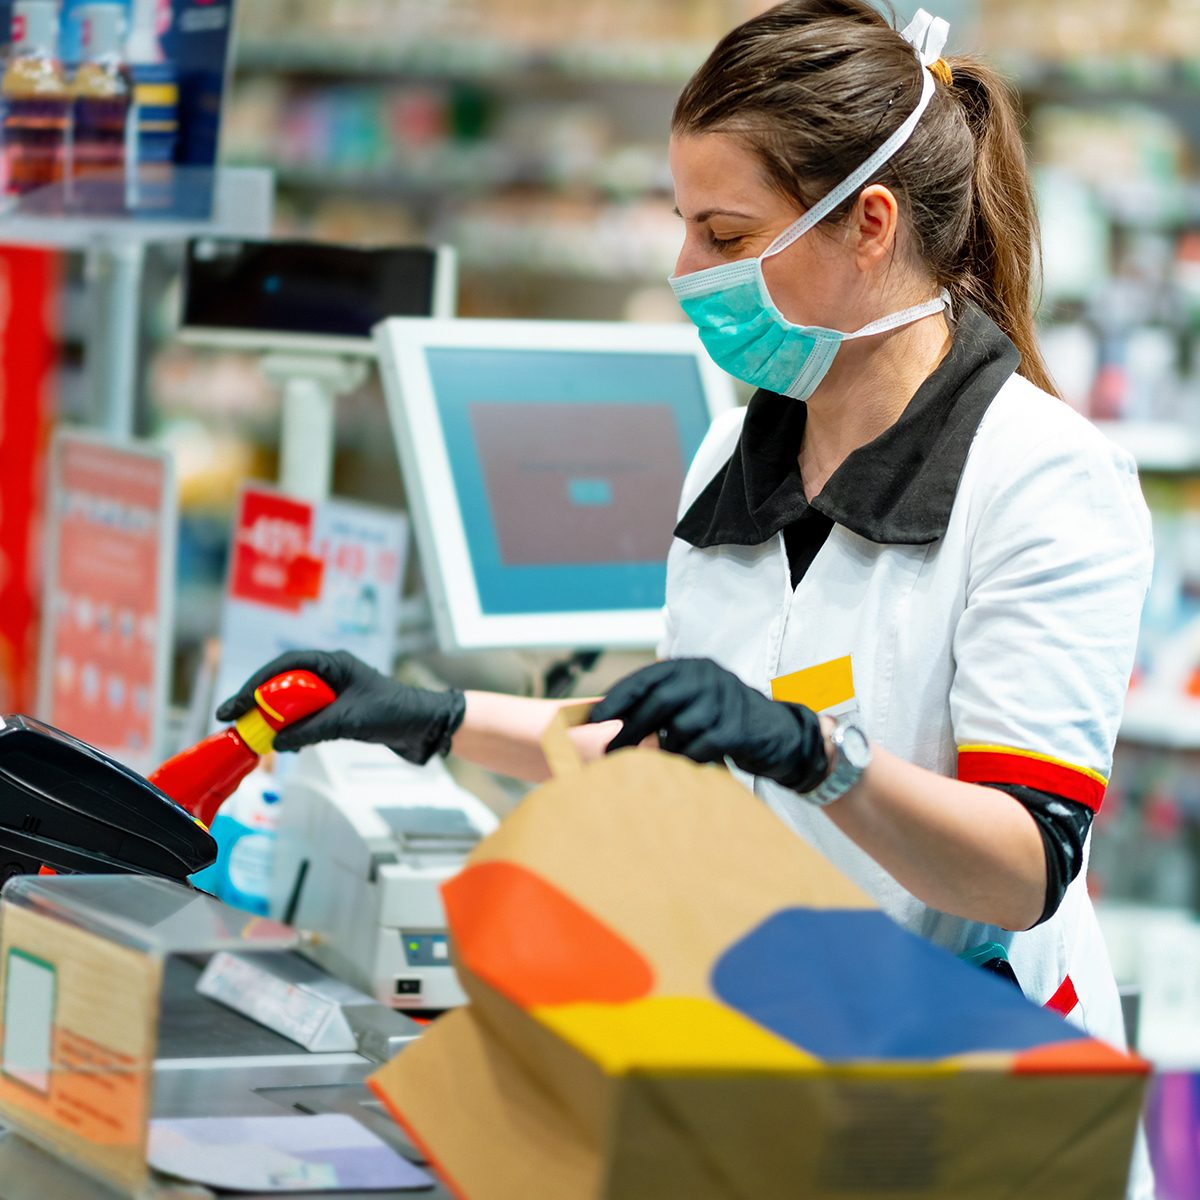 Woman cashier wearing protective face mask and gloves to prevent viruses, scanning disinfection products at the cash register and packing in paper bag